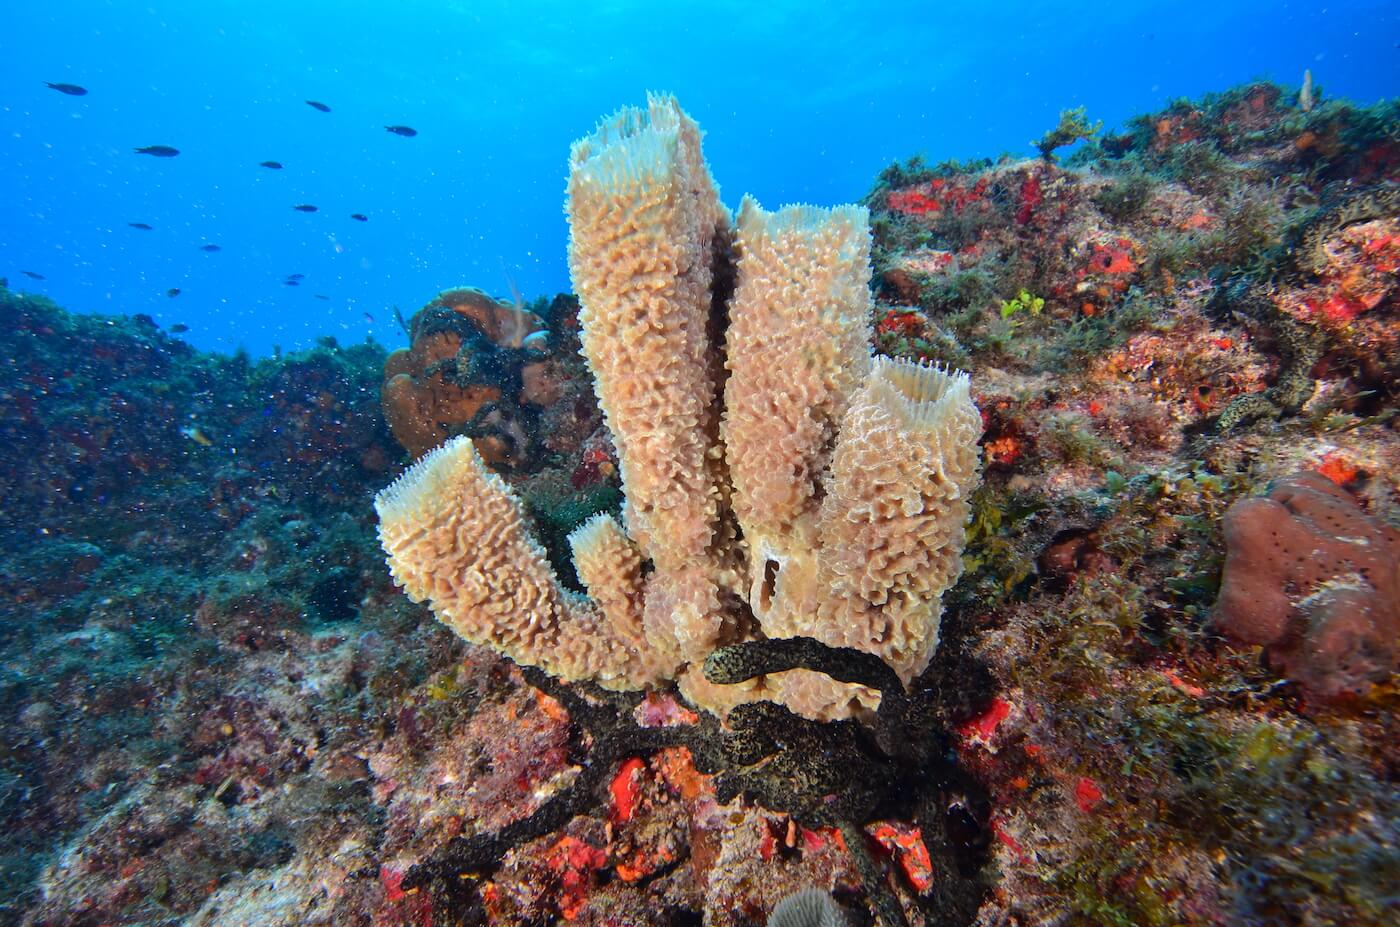 Coral-Reef-Cancun-Dive-Center-Caribbean-Connections-9